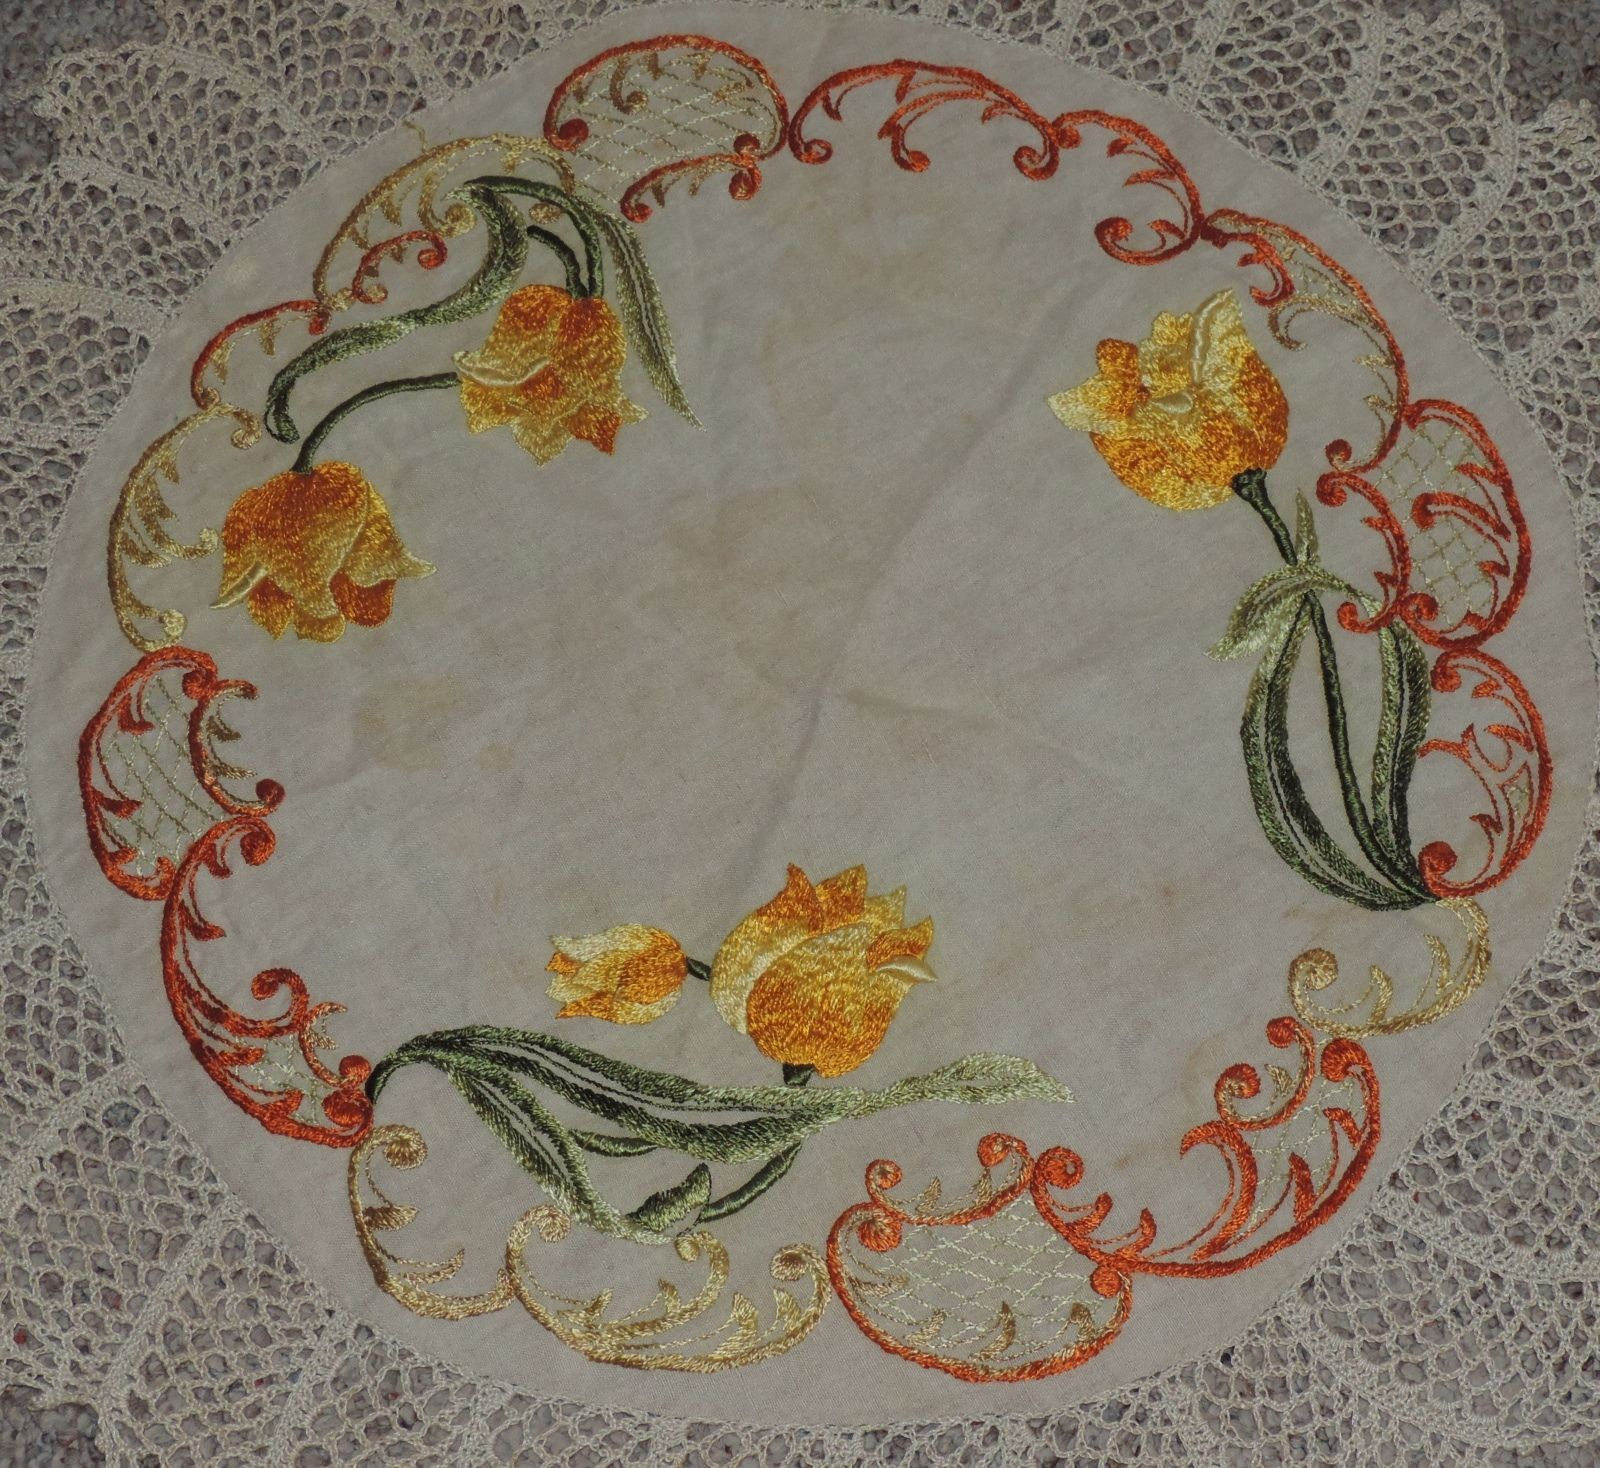 Arts and crafts table linens - Antique Mission Arts Amp Crafts Round Table Linen Embroidered Tulips Crochet Lace Ebay